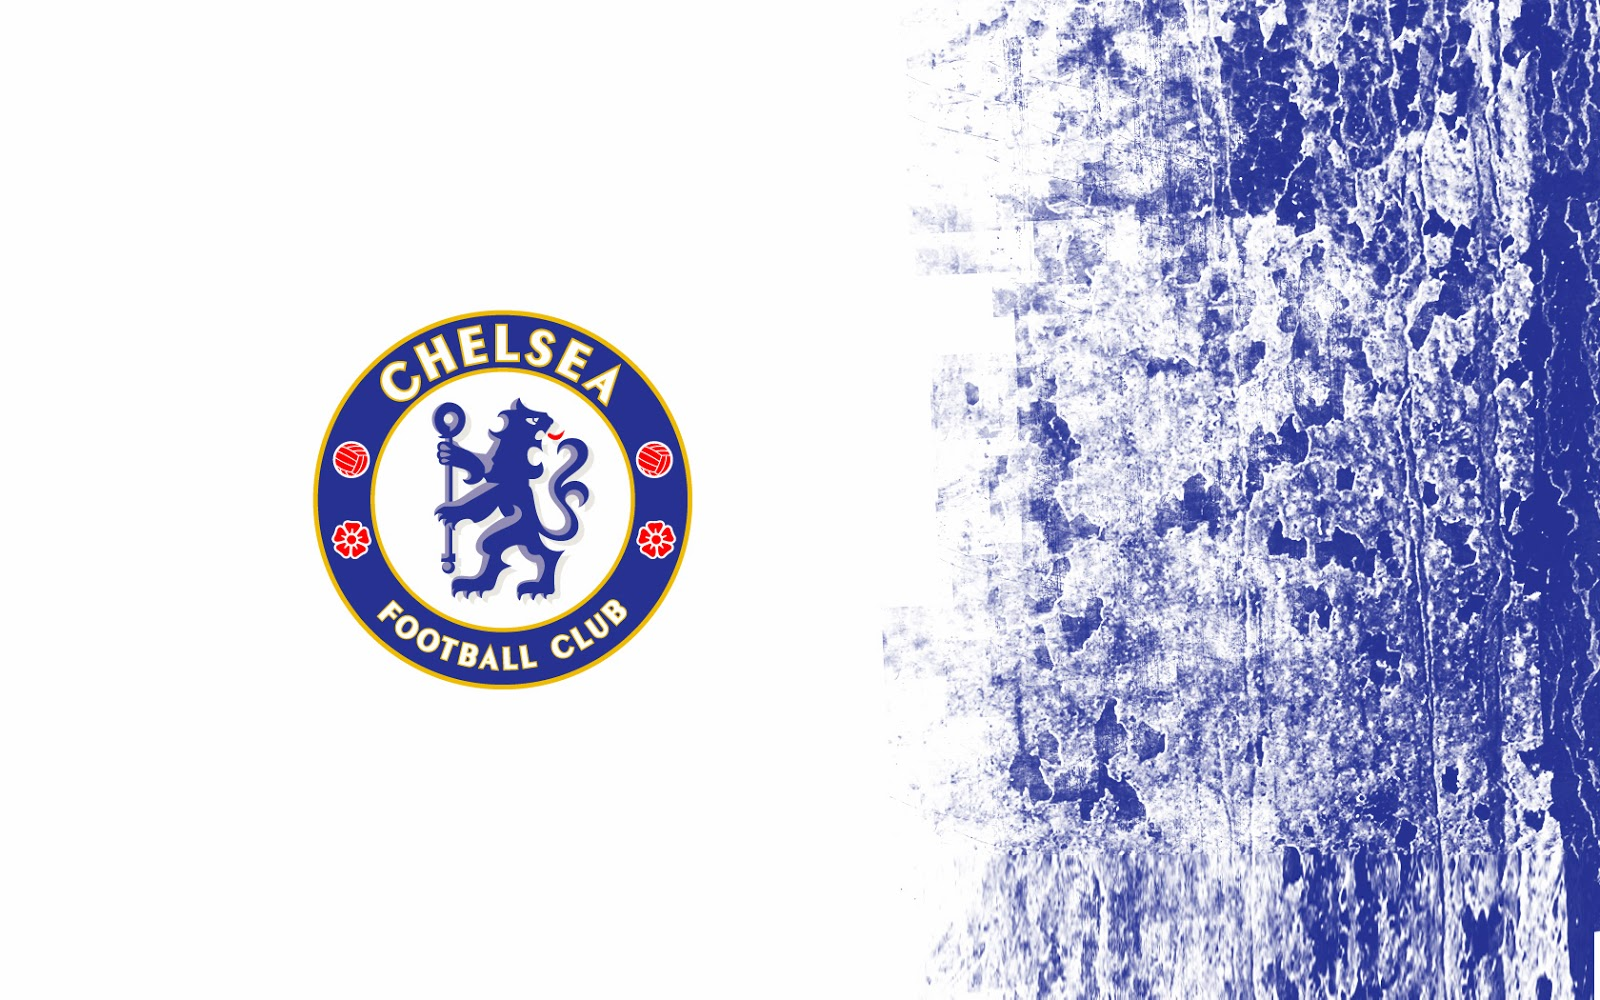 Chelsea Fc Wallpapers Beautiful Desktop Wallpapers 2014 Dramel